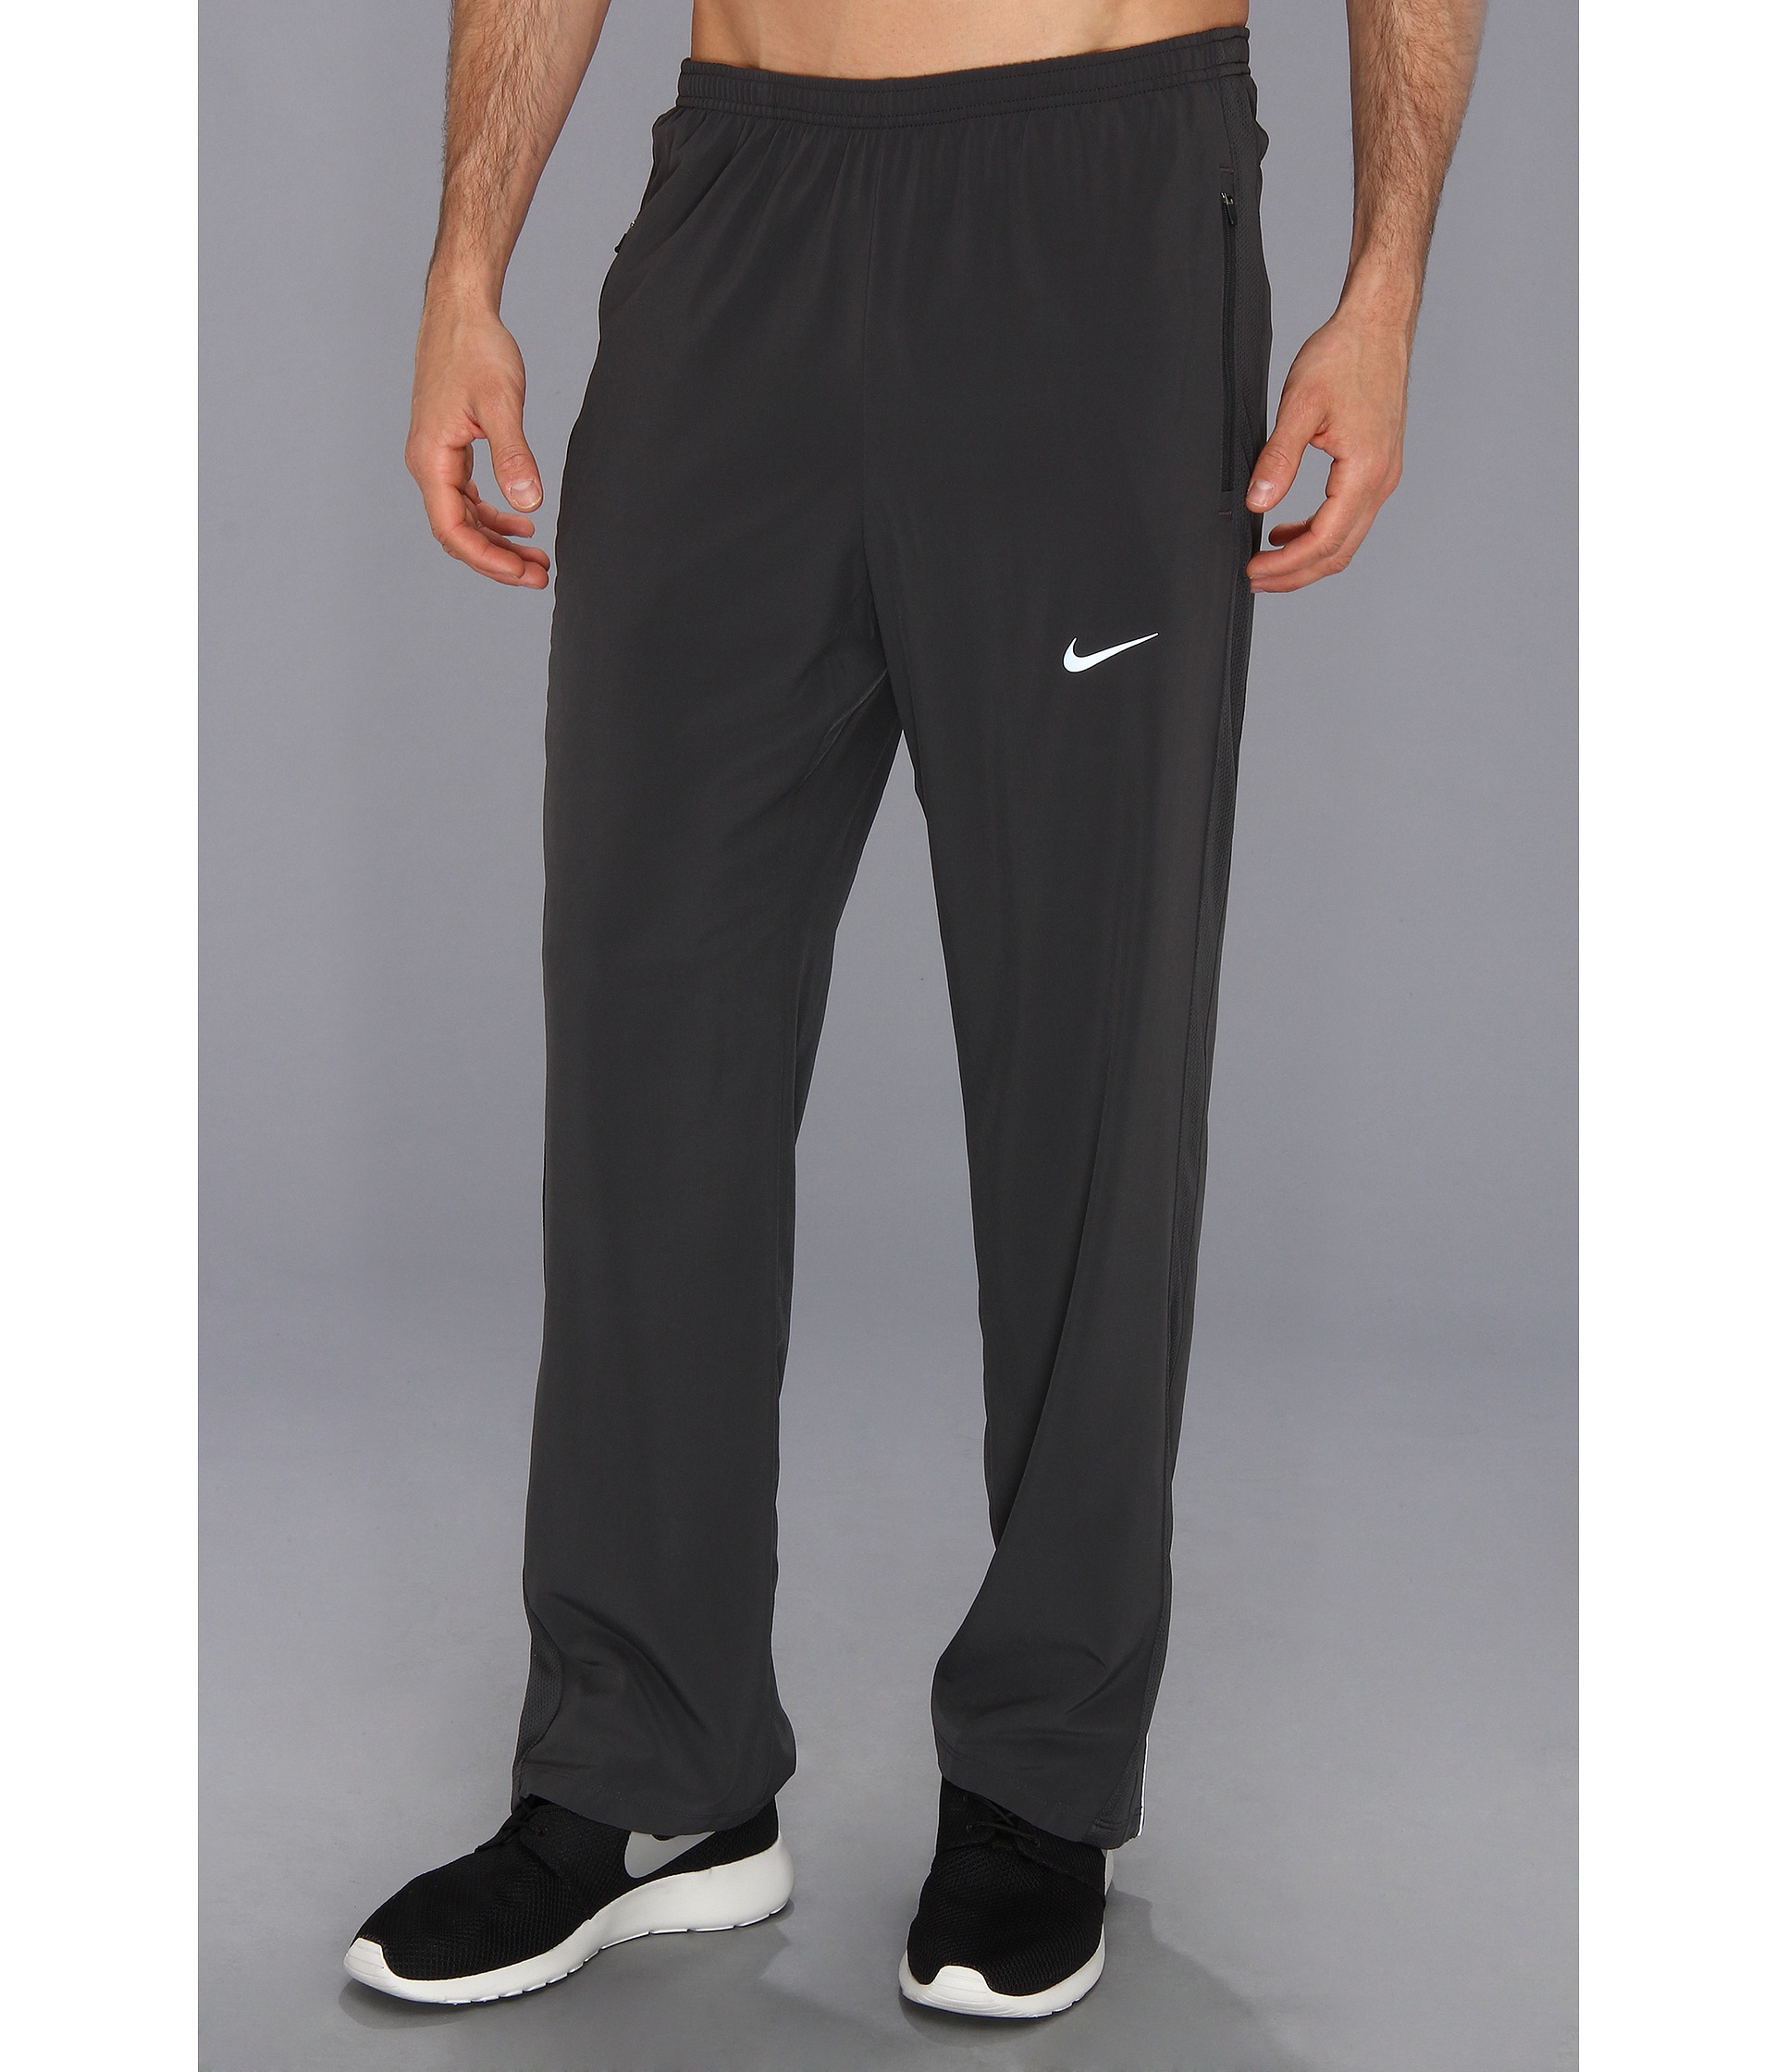 the gallery for gt nike sweatpants for women with pockets